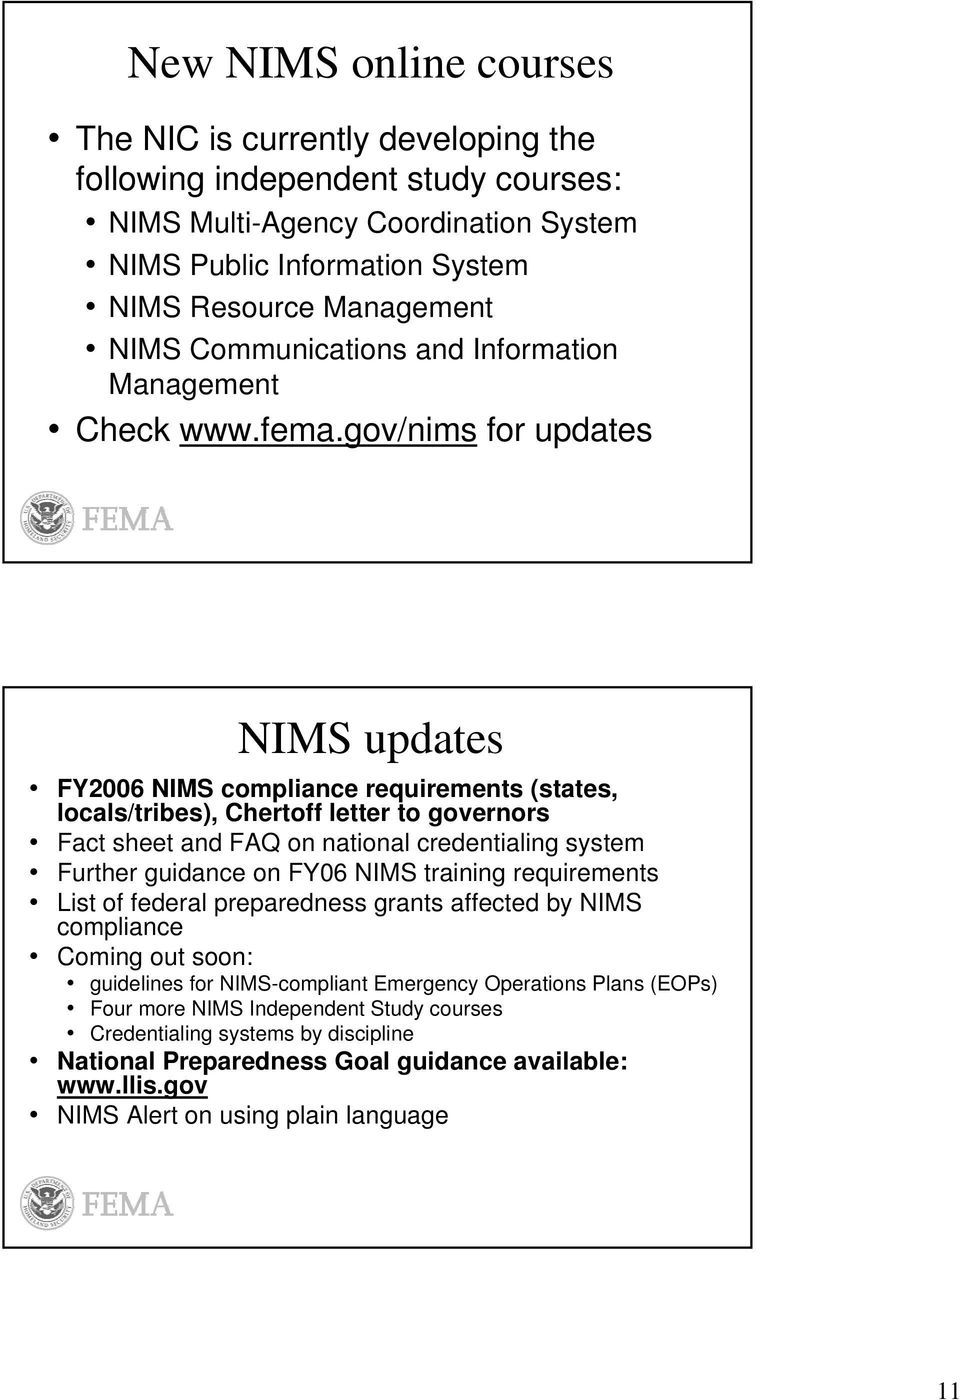 gov/nims for updates NIMS updates FY2006 NIMS compliance requirements (states, locals/tribes), Chertoff letter to governors Fact sheet and FAQ on national credentialing system Further guidance on